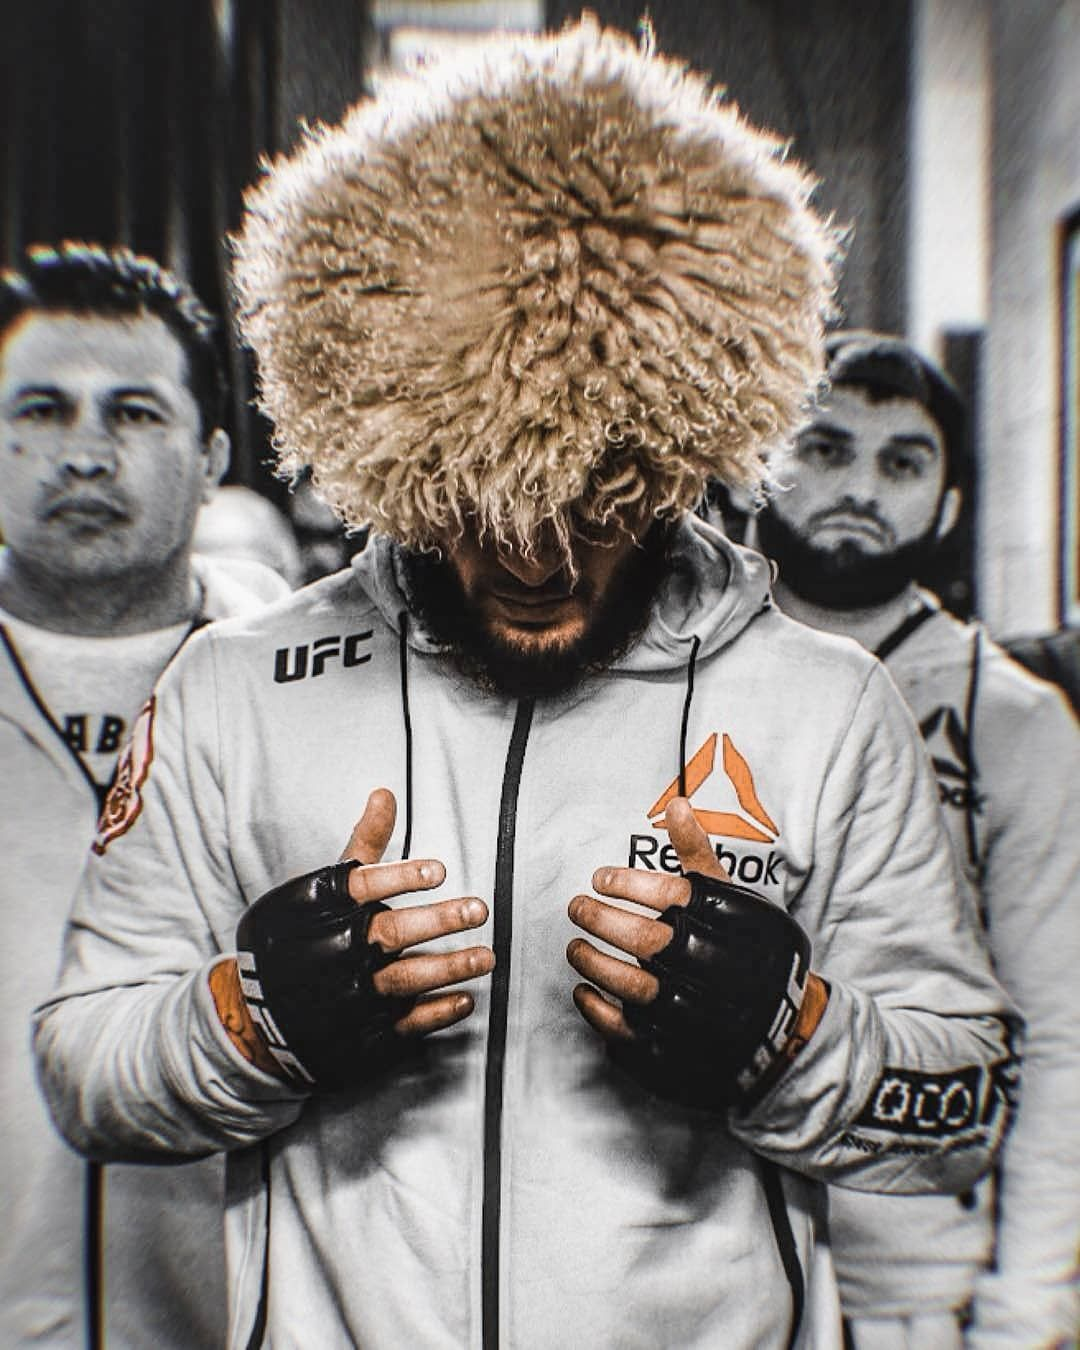 Dana White Confirms The Winner Of Max Holloway Vs Dustin Poirier Will Get Khabib Nurmagomedov Ufc Fighters Ufc Ufc Boxing